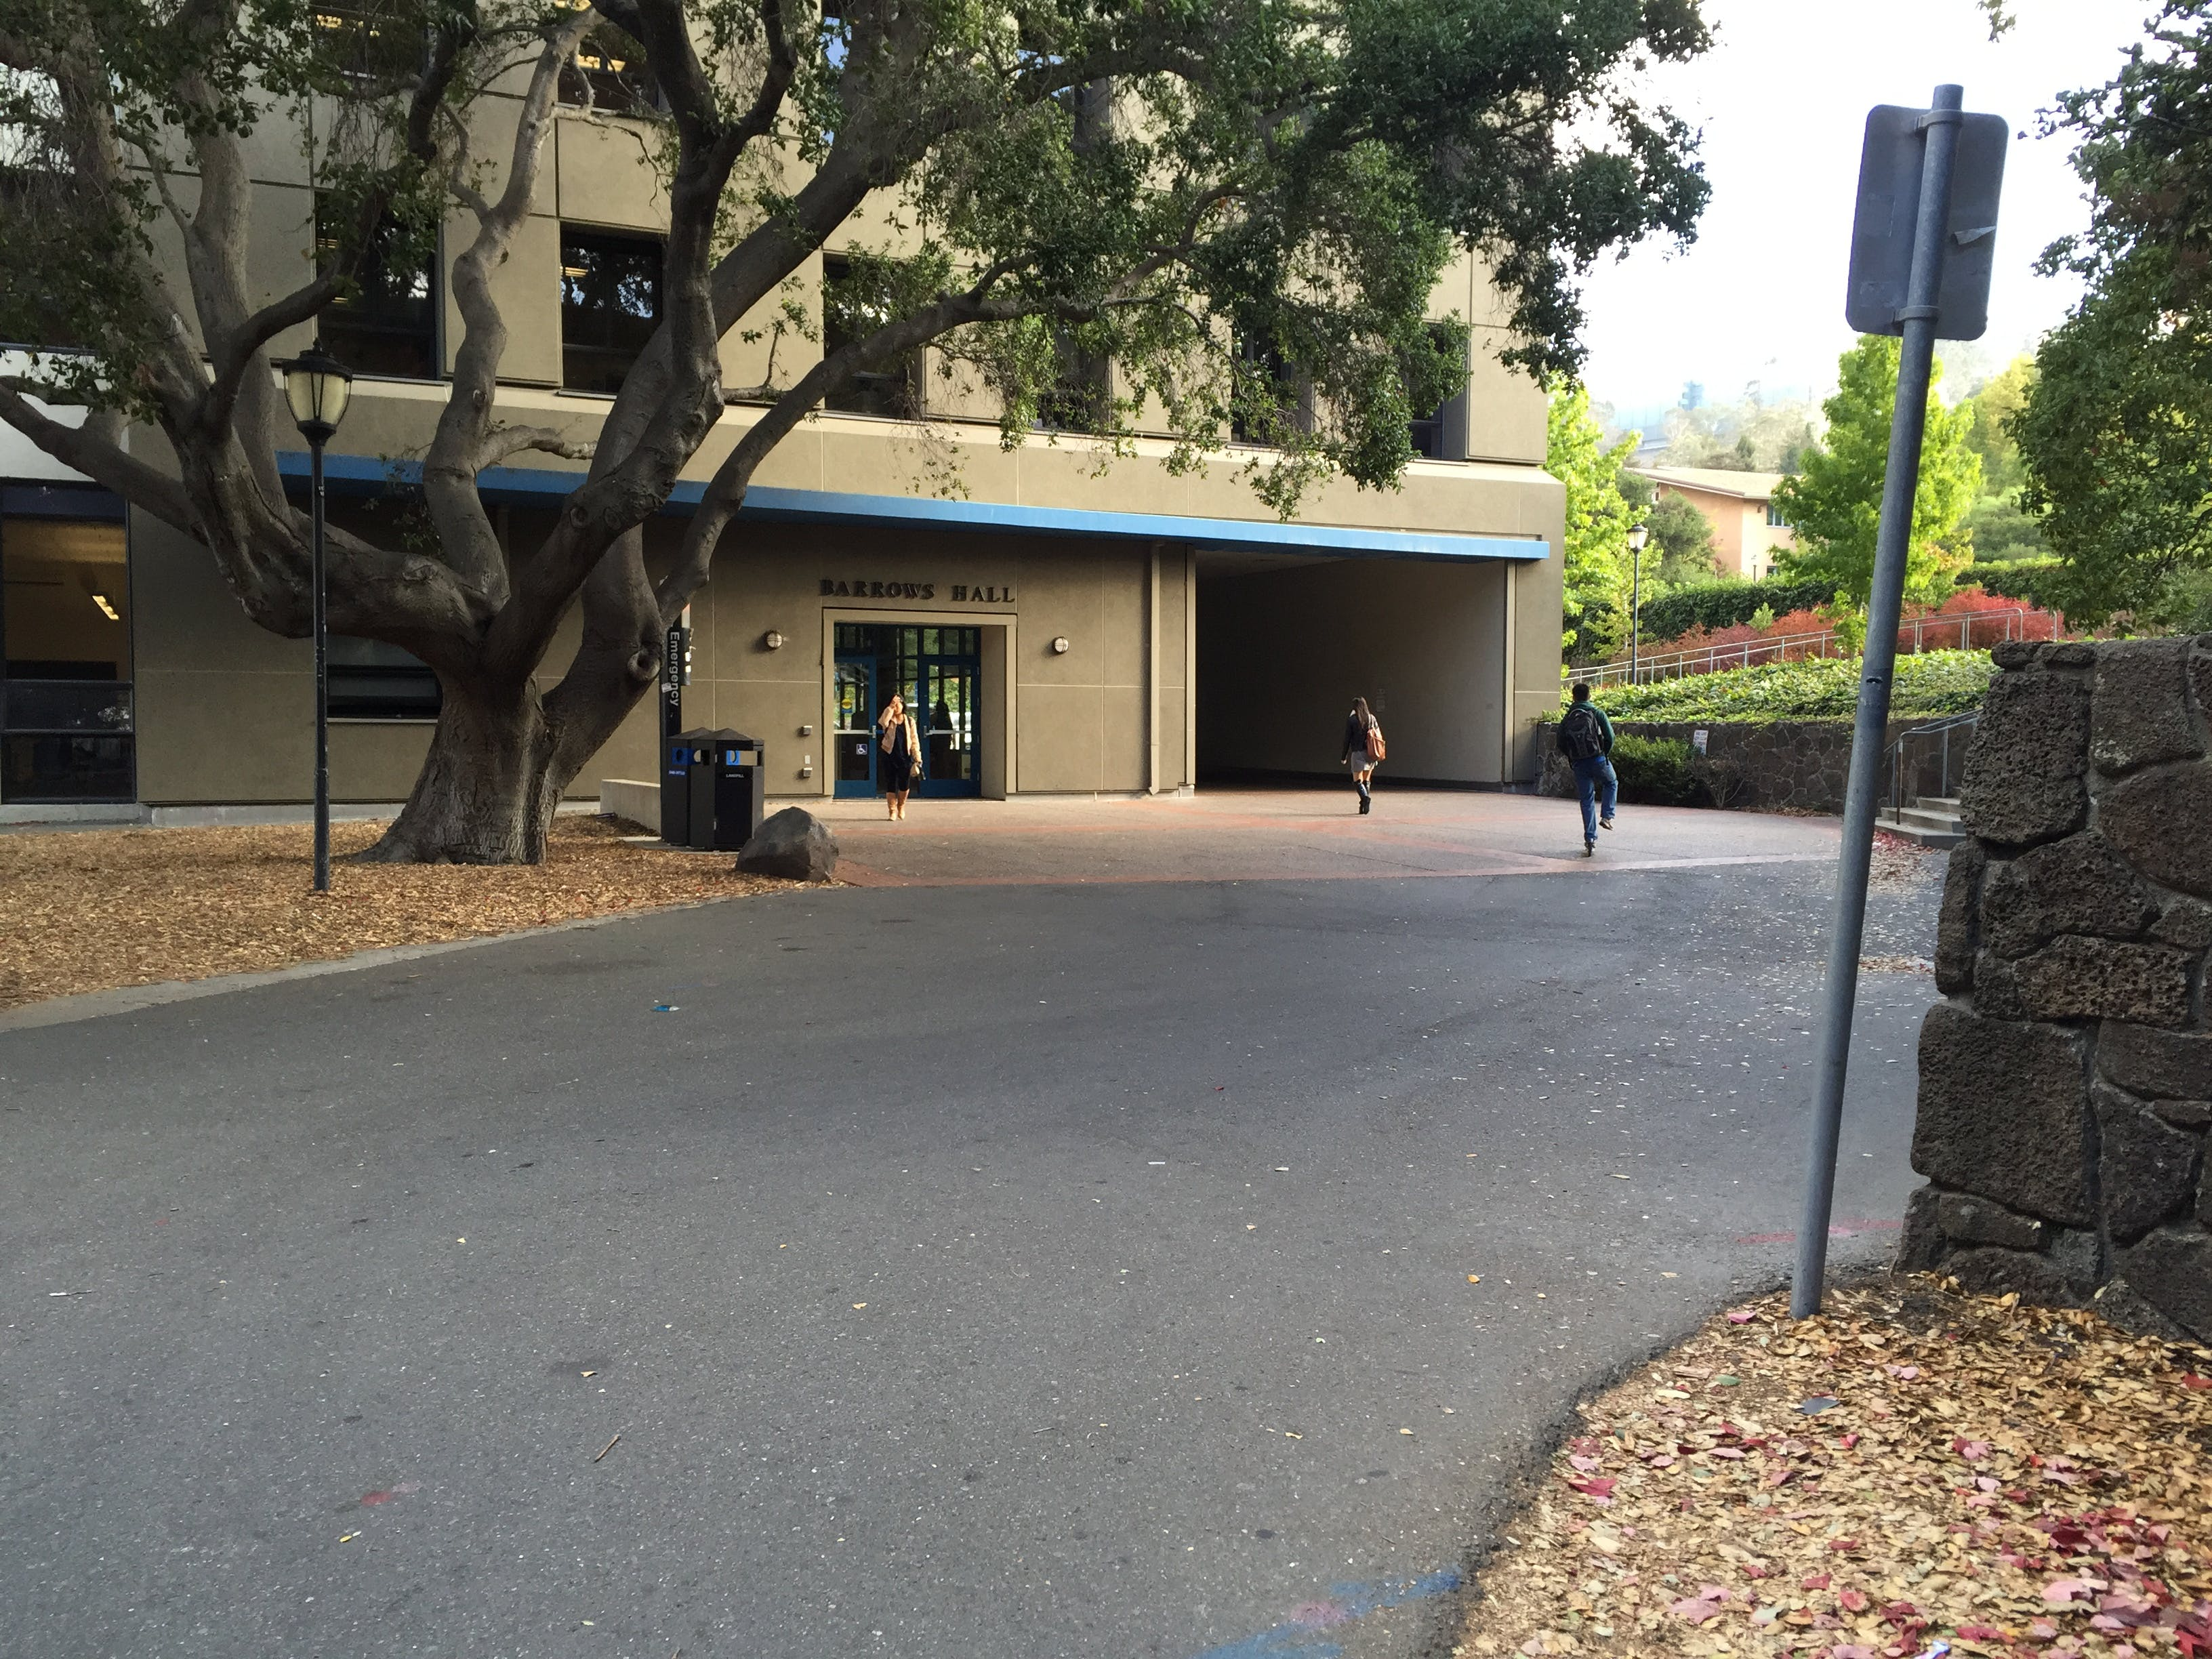 A wider view of the tunnel in relation to the building.